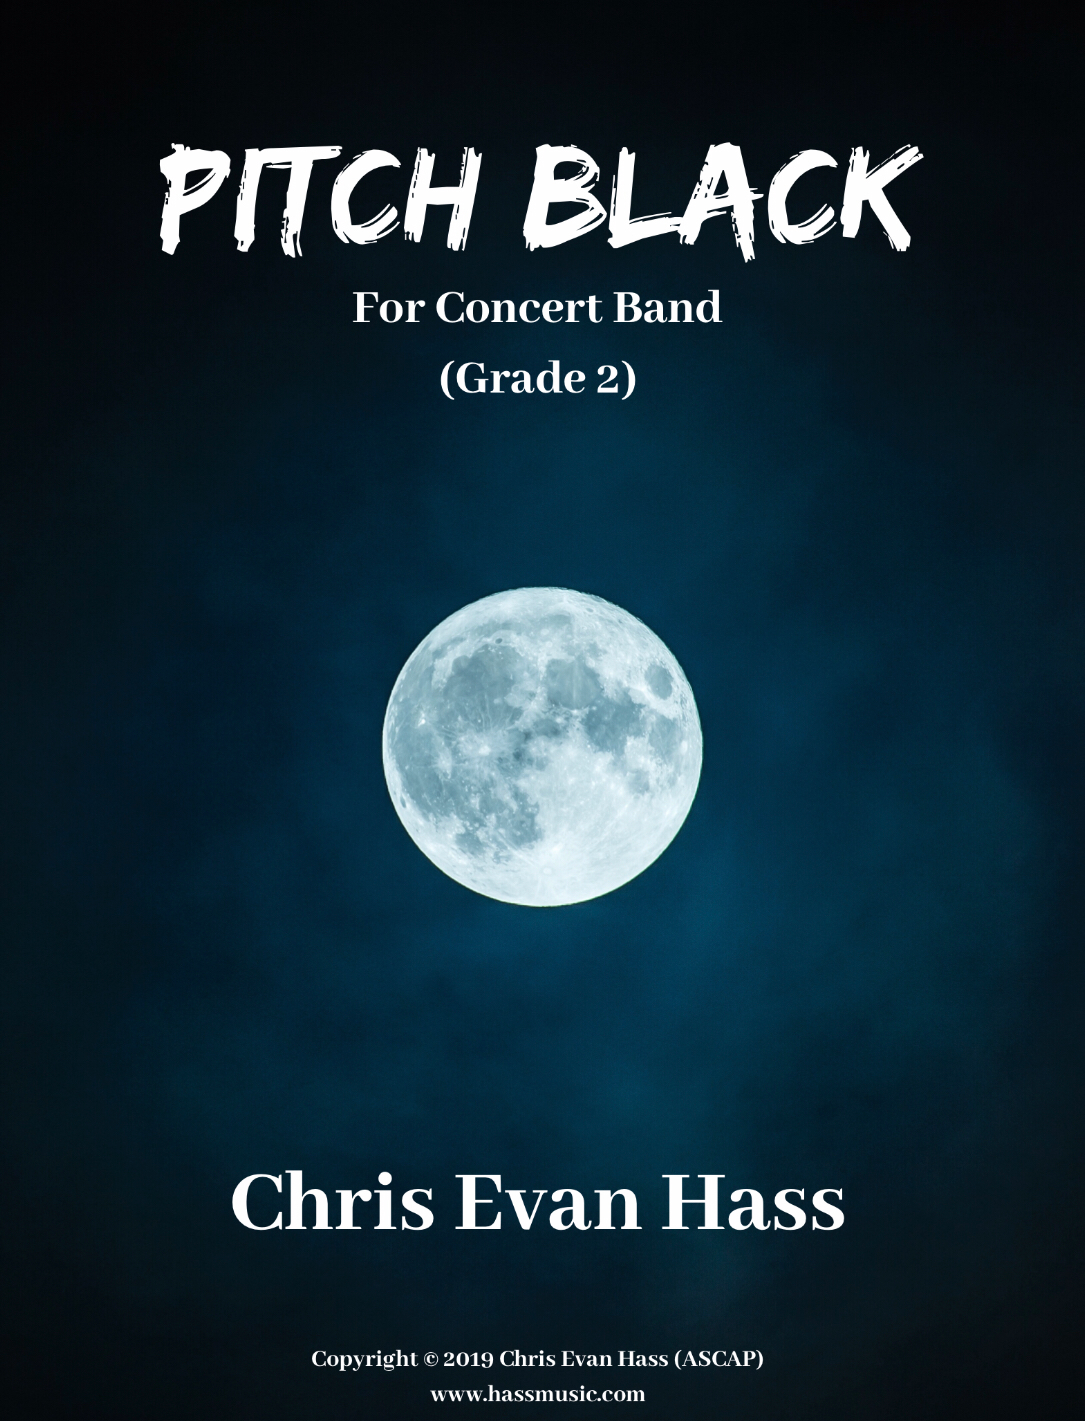 Pitch Black by Chris Evan Hass